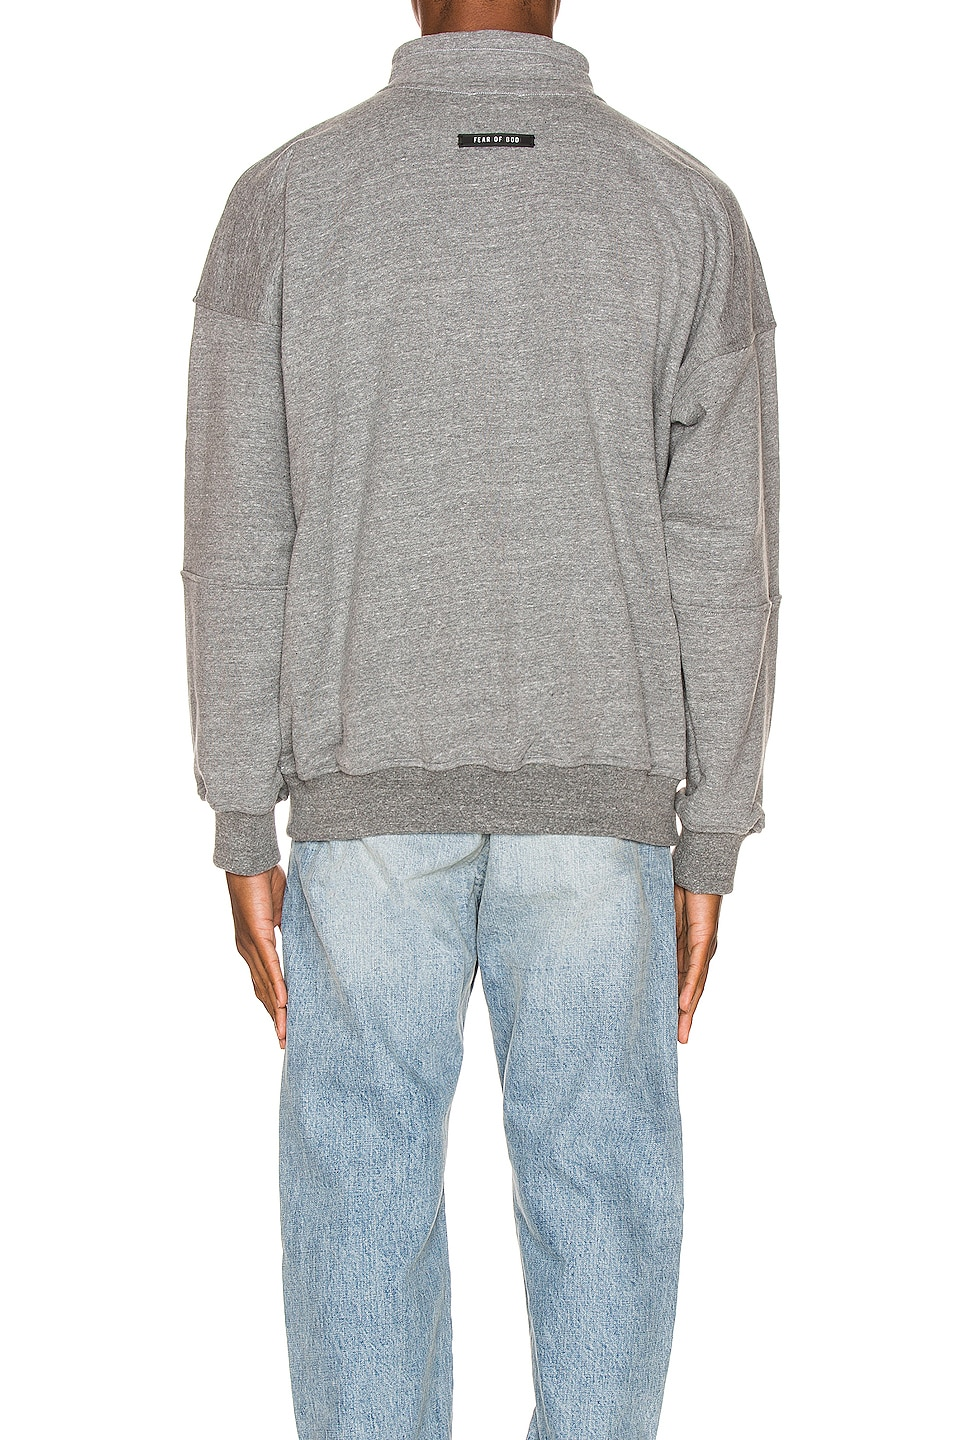 Image 3 of Fear of God Mock Neck FG Pullover in Heather Grey & Black